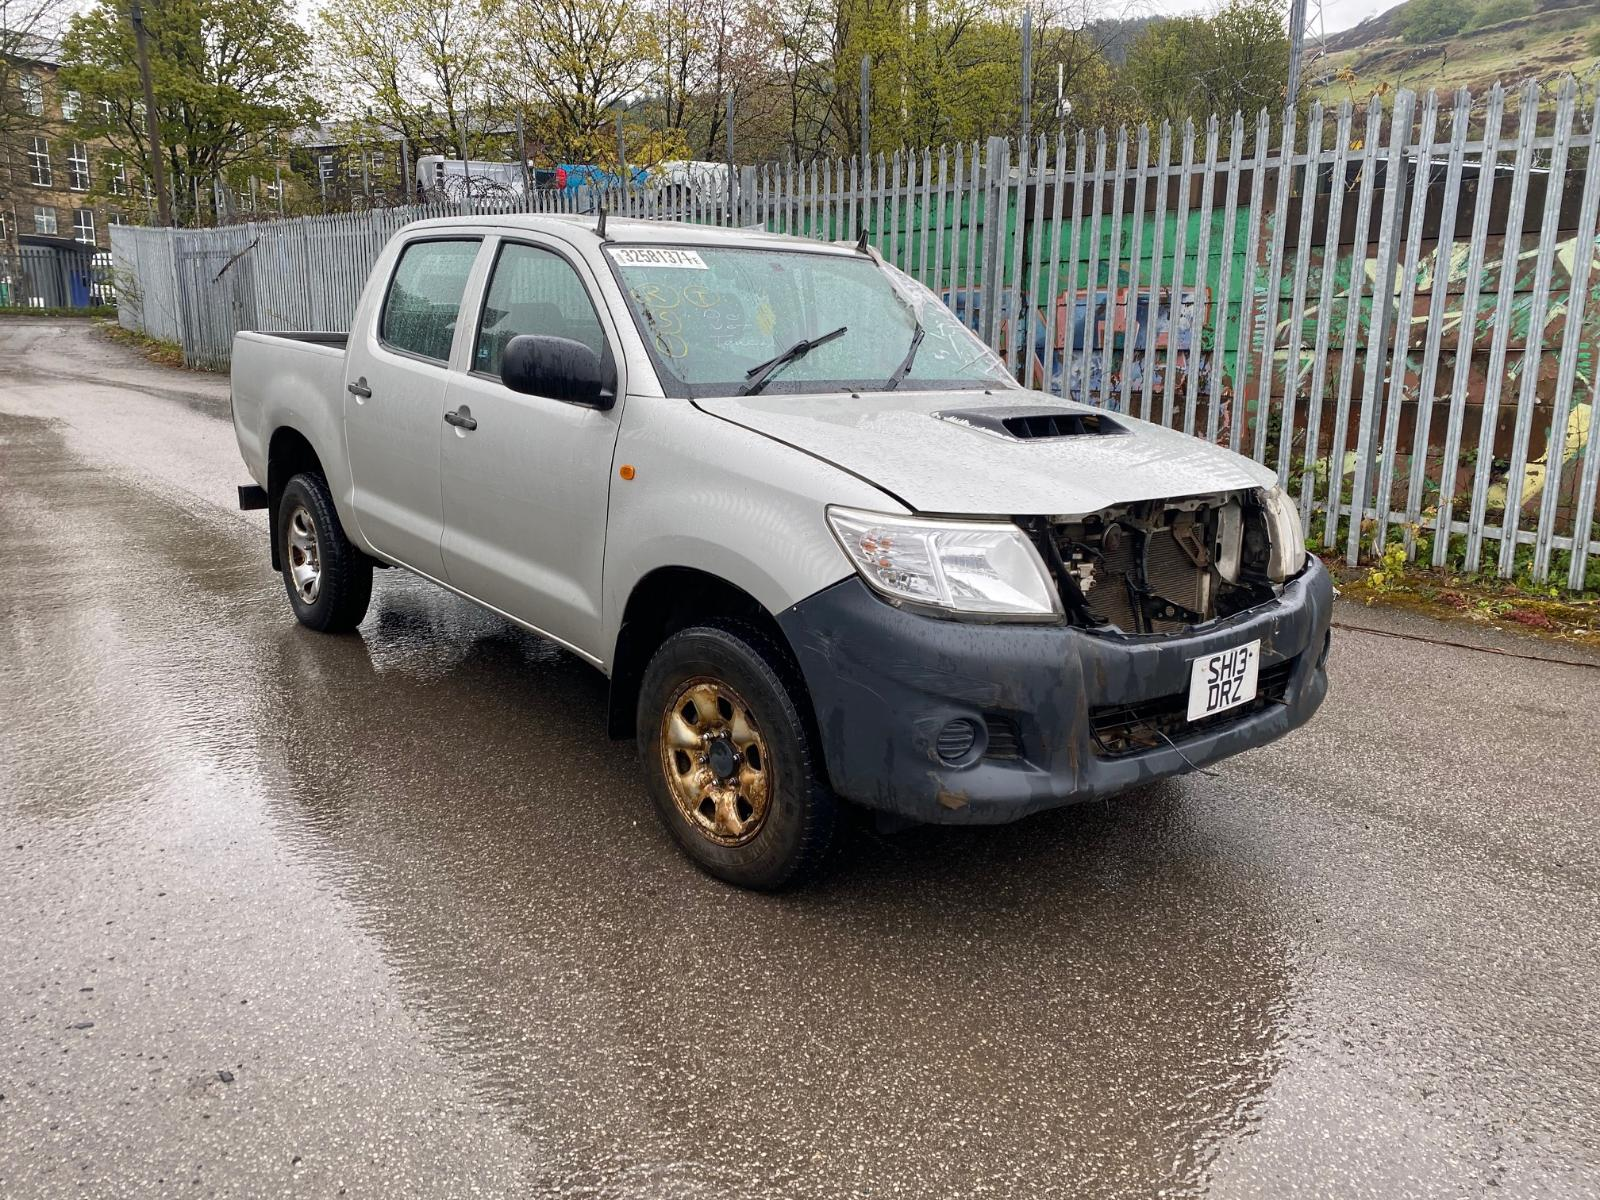 Image for a TOYOTA HILUX 2013 4 Door Pickup